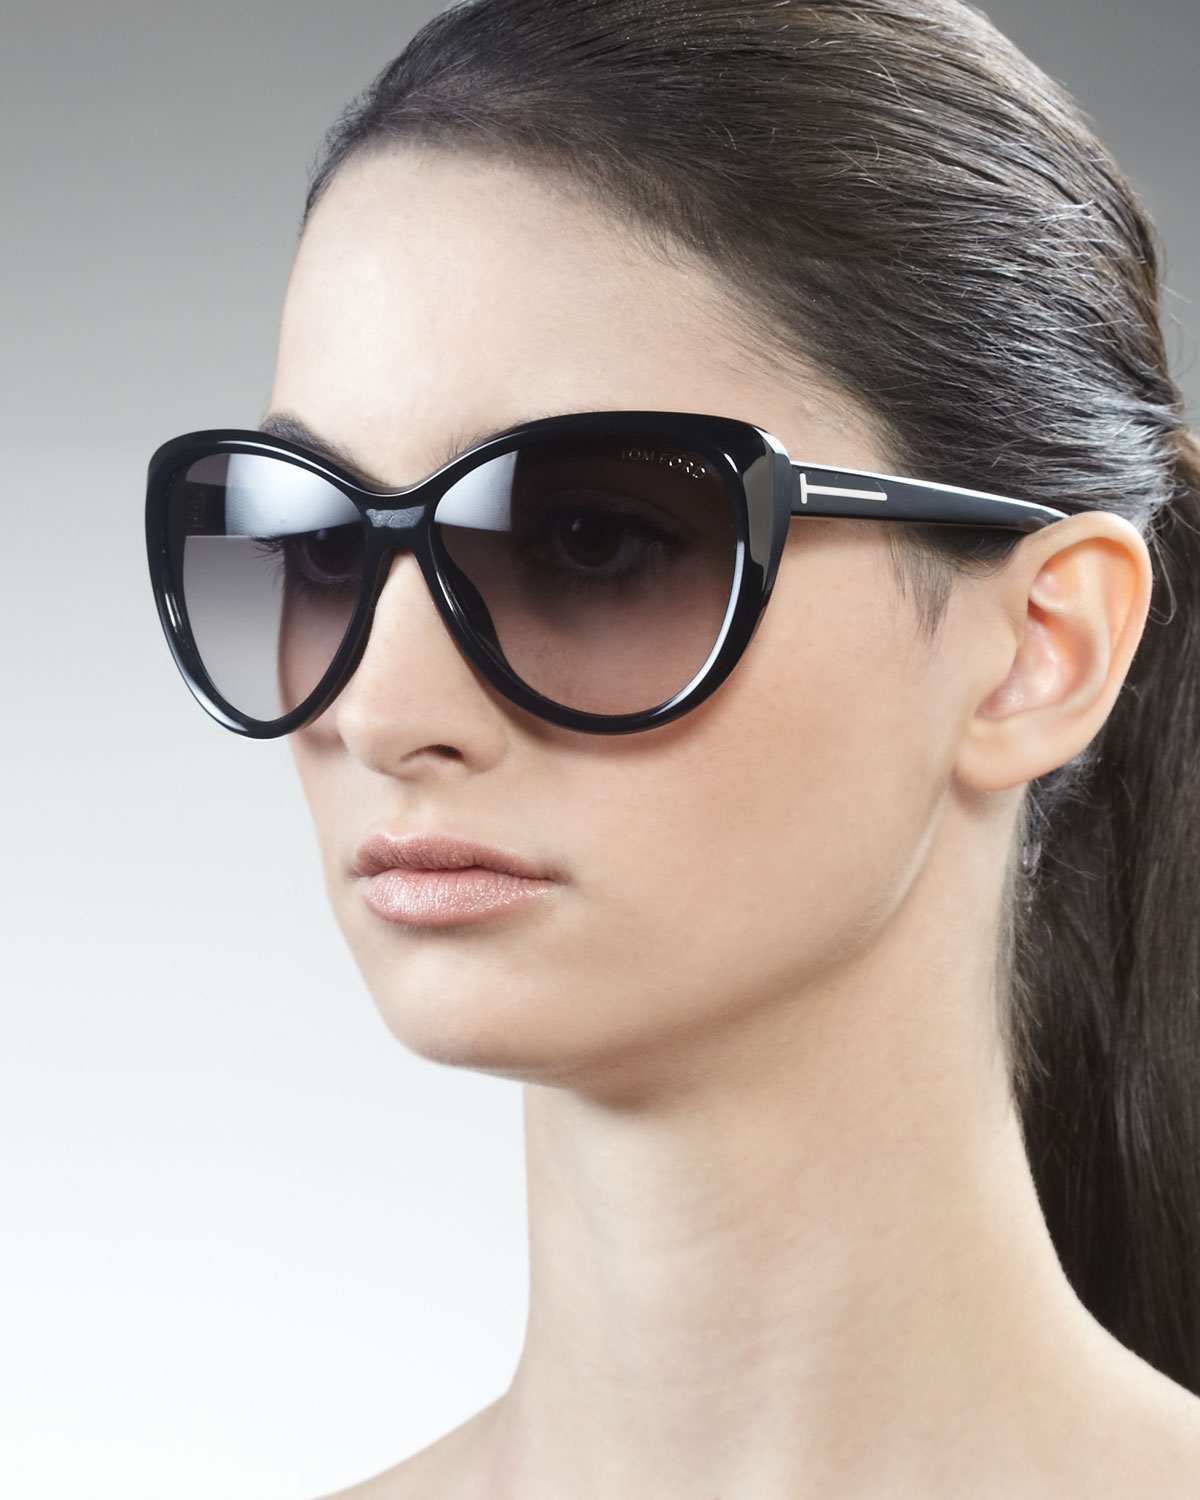 Cat-eye Acetate Sunglasses - Black Tom Ford J6yilBAs